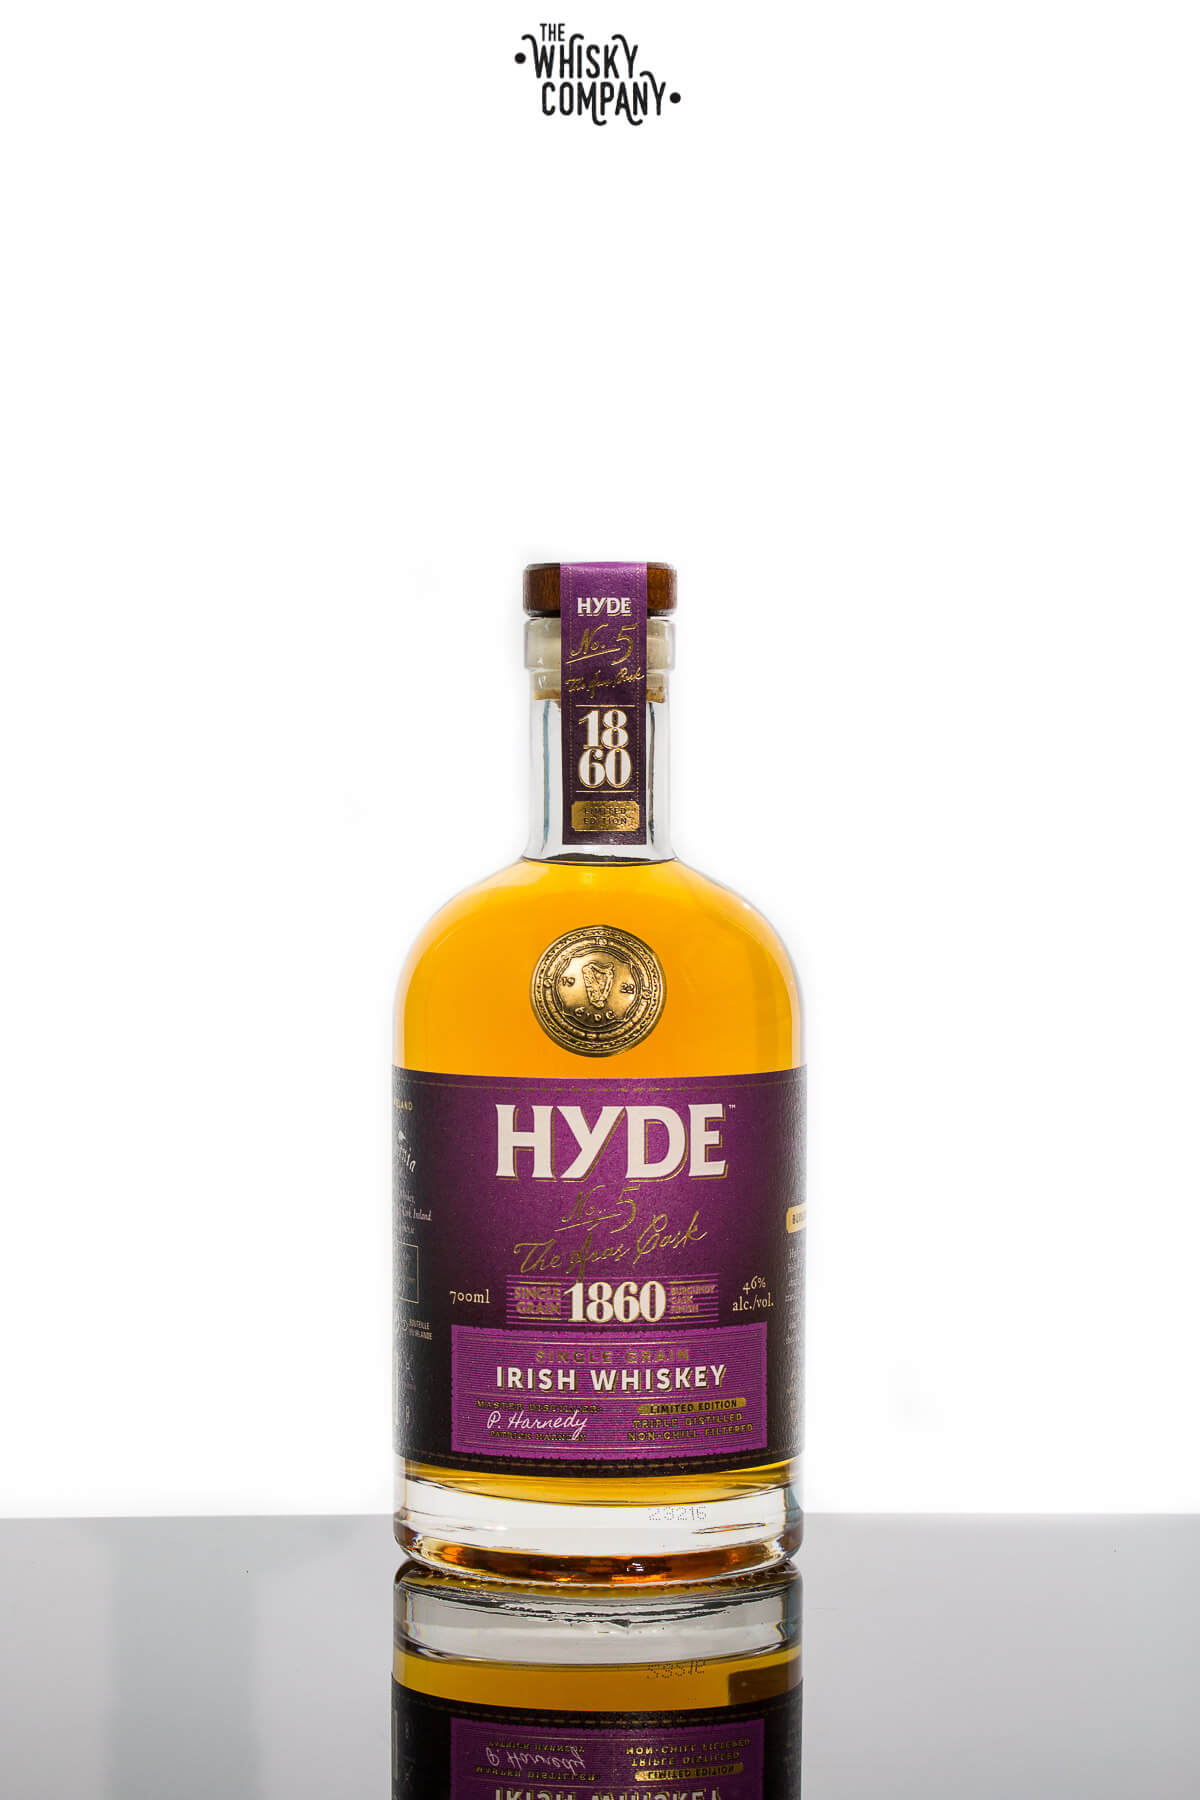 Hyde No. 5 Burgundy Cask Finish Single Grain Irish Whiskey (700ml)